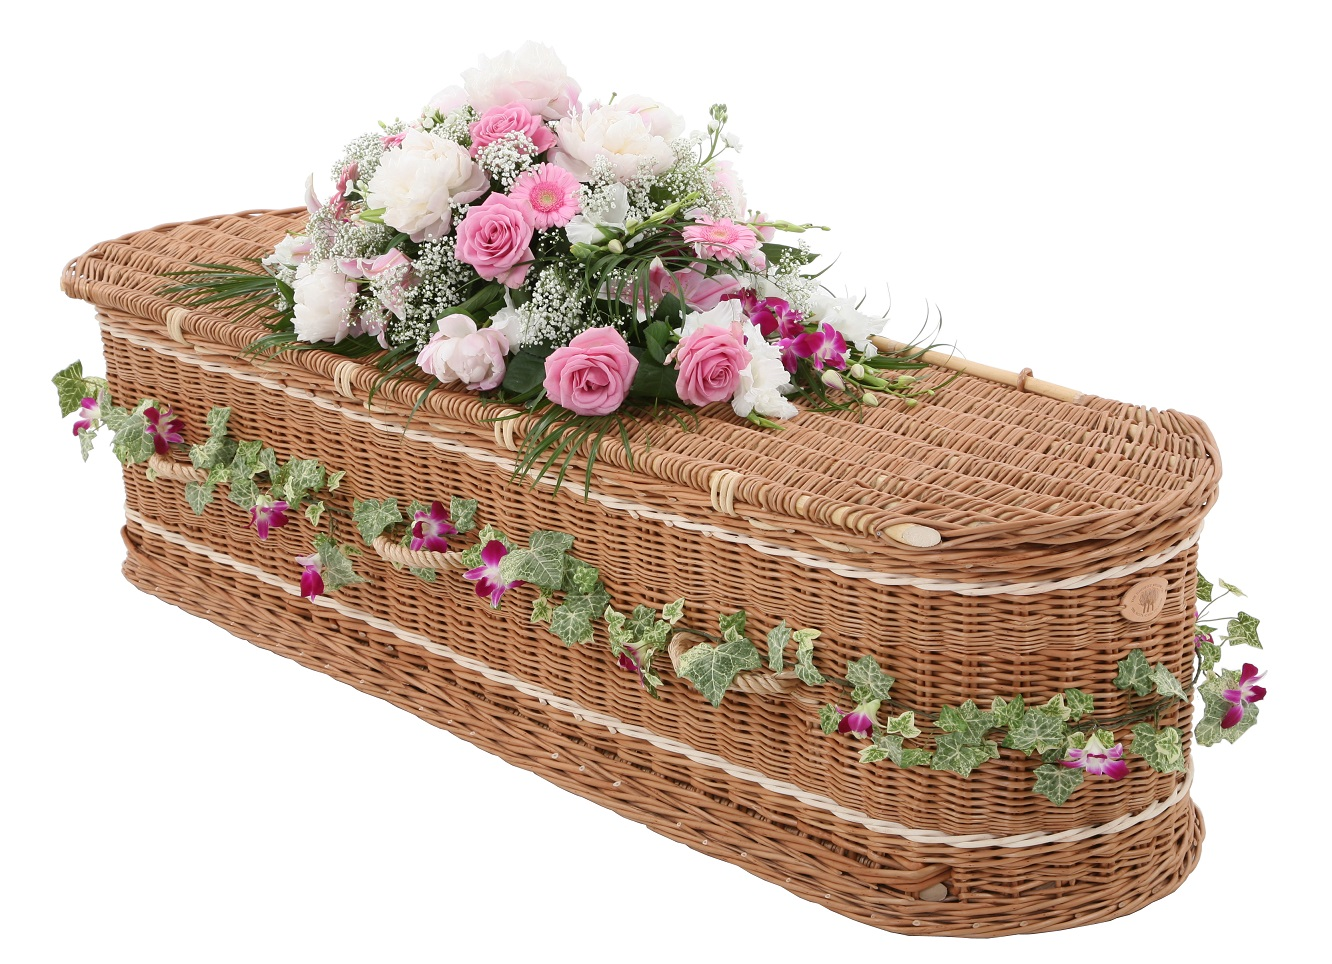 Willow Coffins    Our Willow coffins are made in somerset, england and are hand made.they can be decorated with a floral garland and come in a wide range of colours